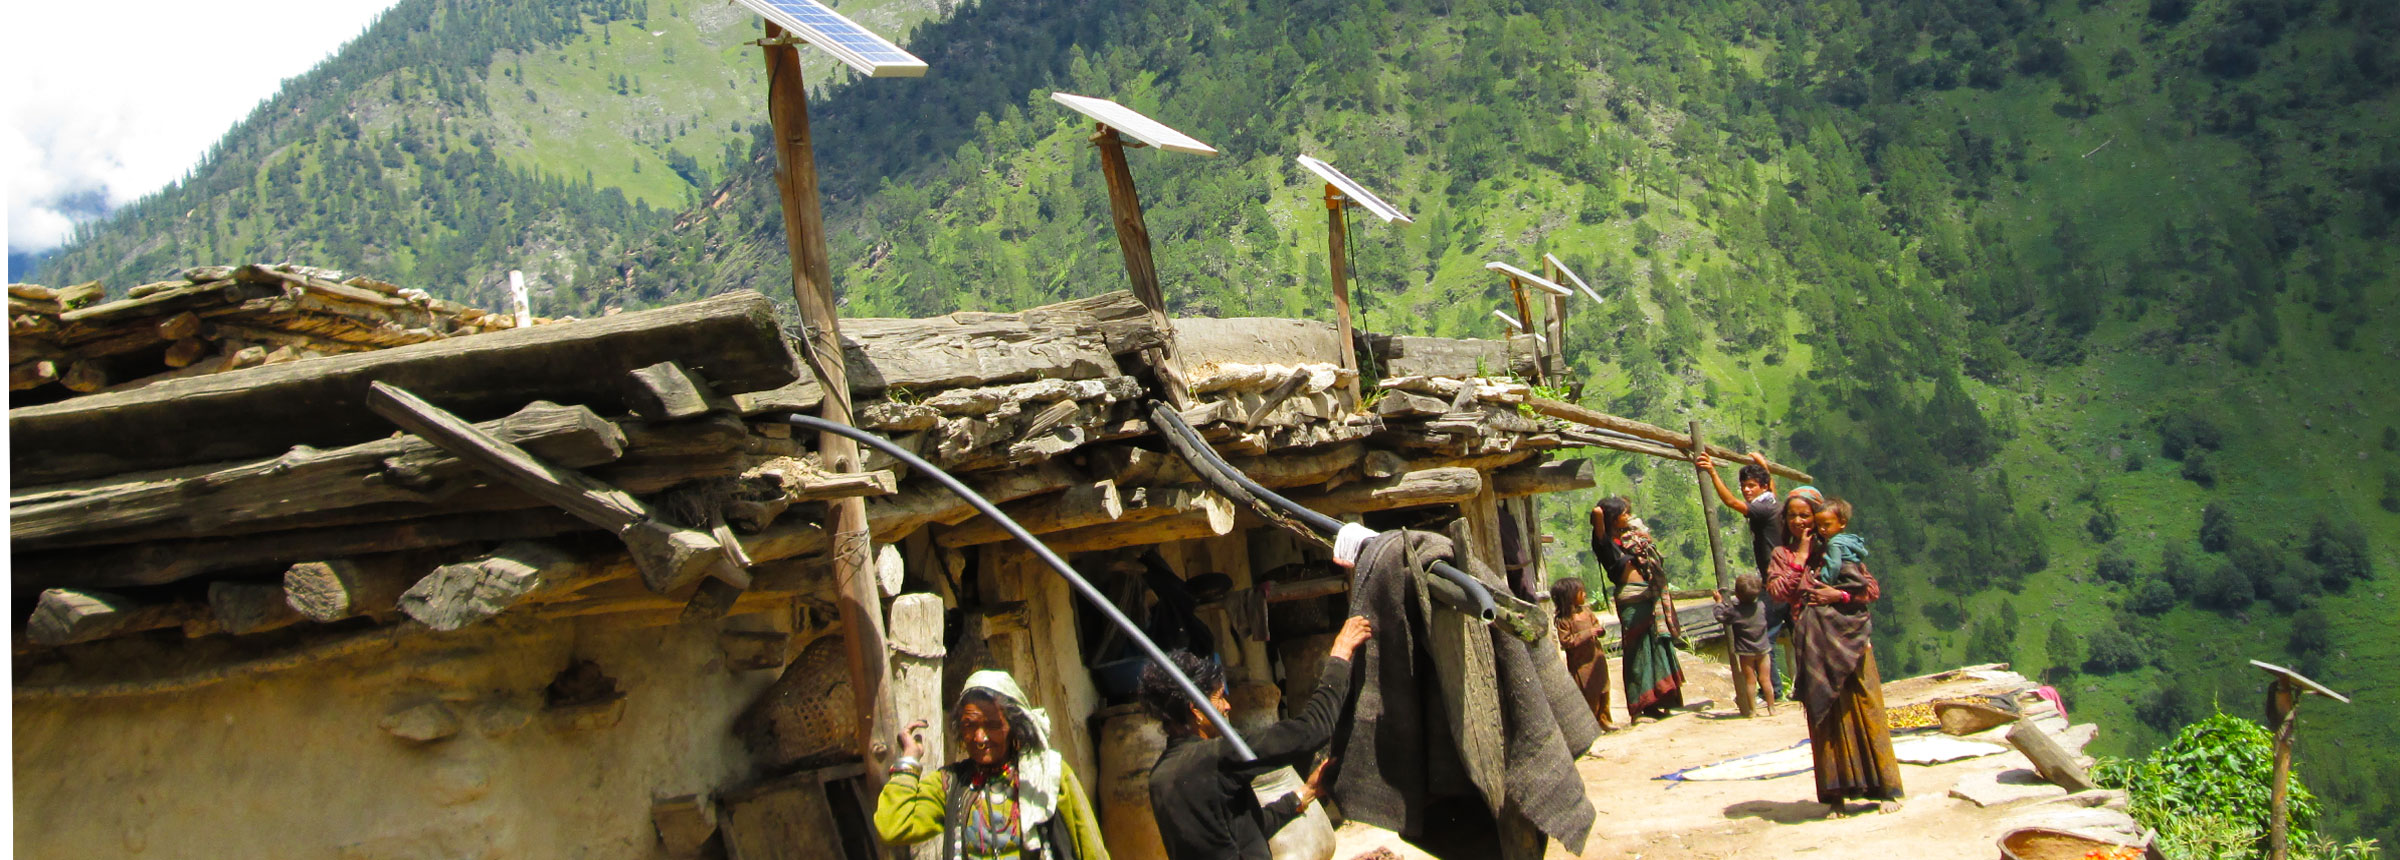 Solar panes atop roofs in Nepali village